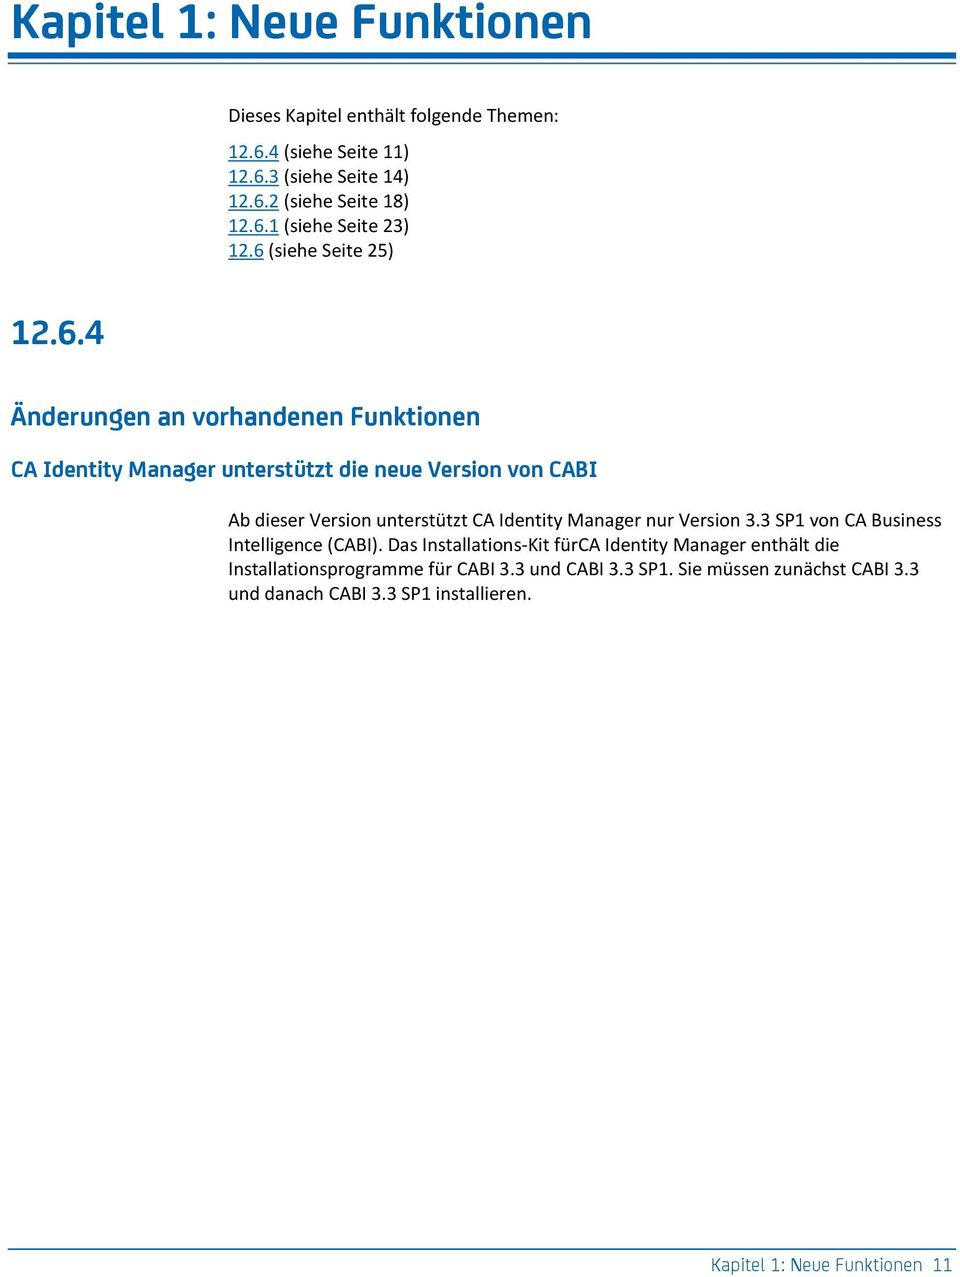 CA Identity Manager nur Version 3.3 SP1 von CA Business Intelligence (CABI).